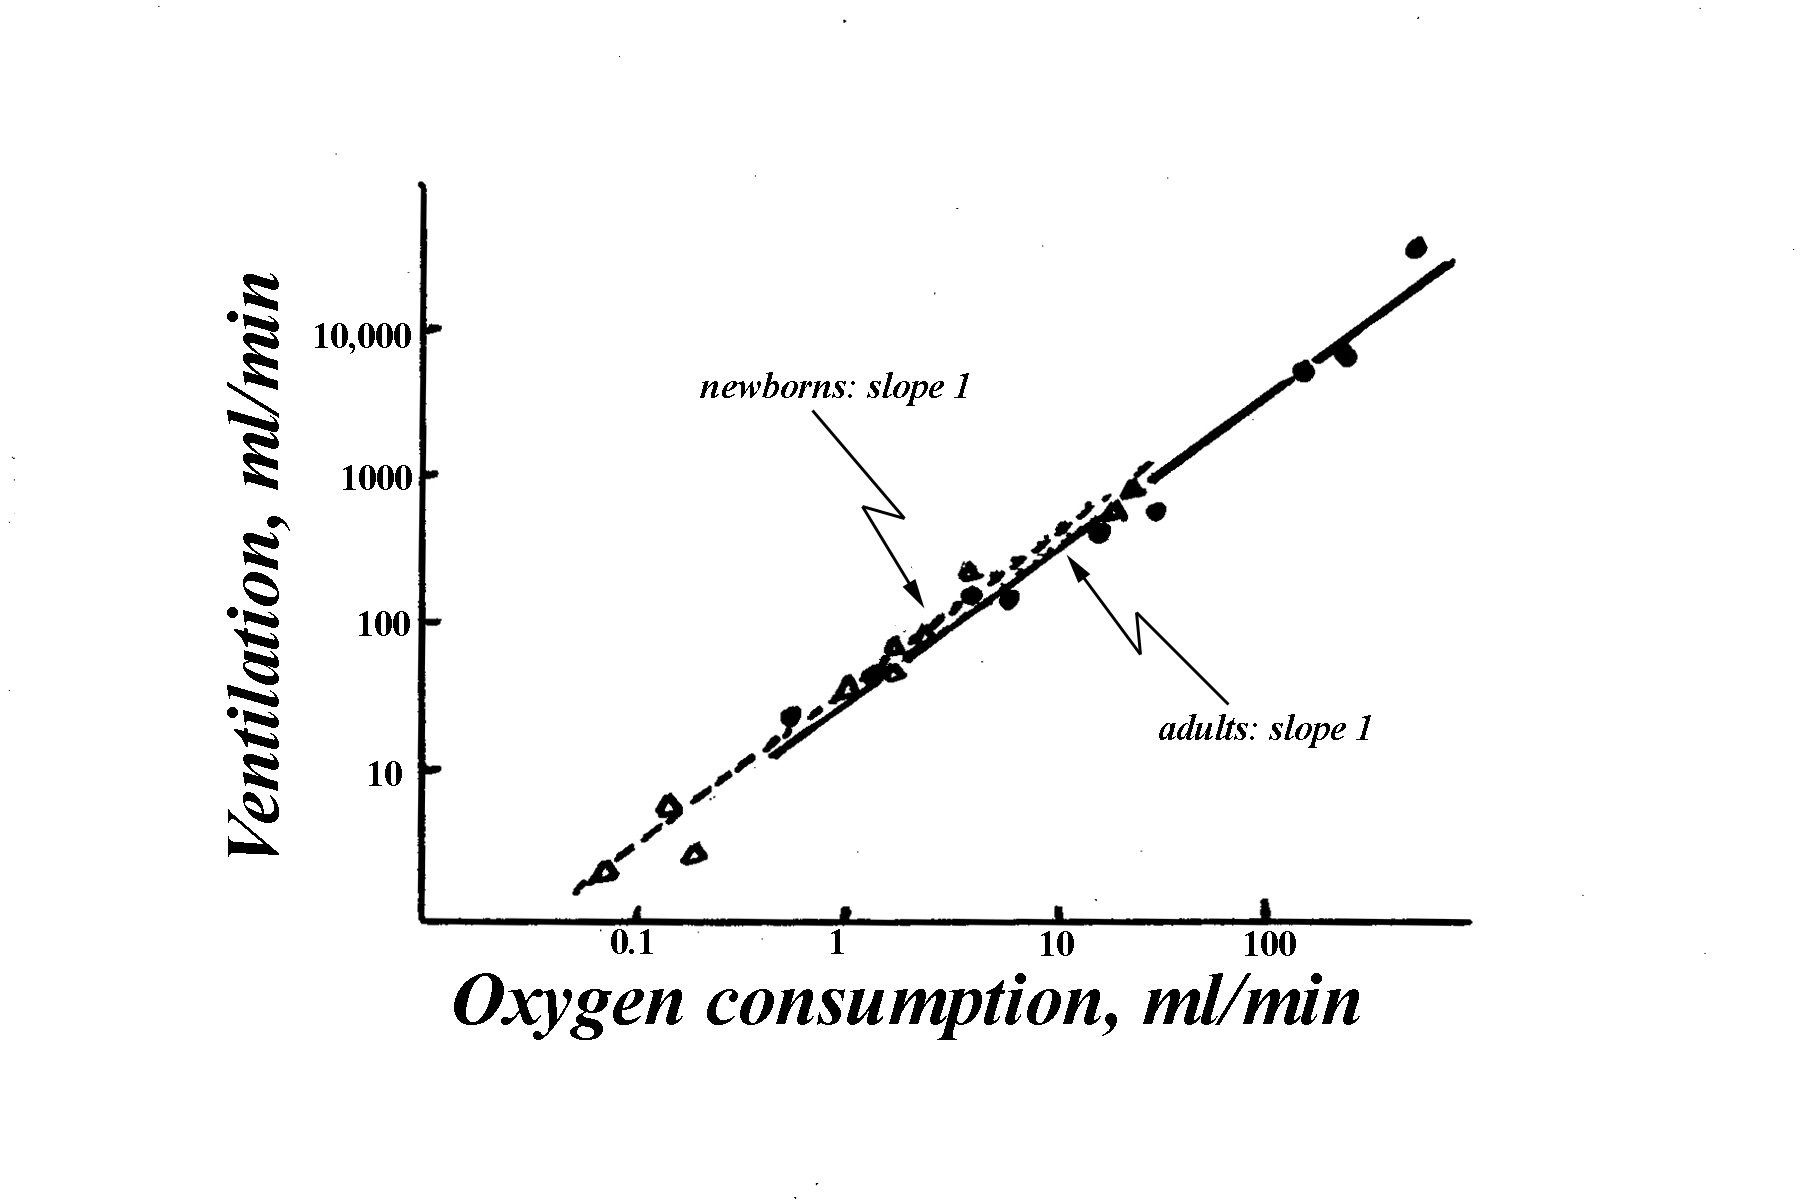 ventilation and oxygen consumption Ventilation and oxygen consumption procedure: we measured the ventillation metabolism of the fish at two different temperatures: (25 c) and (15 c) for each fish,we prepared a 250 ml jar by filling it half full with water from the aquarium in which the fish was housedwe transfered the fish from its.